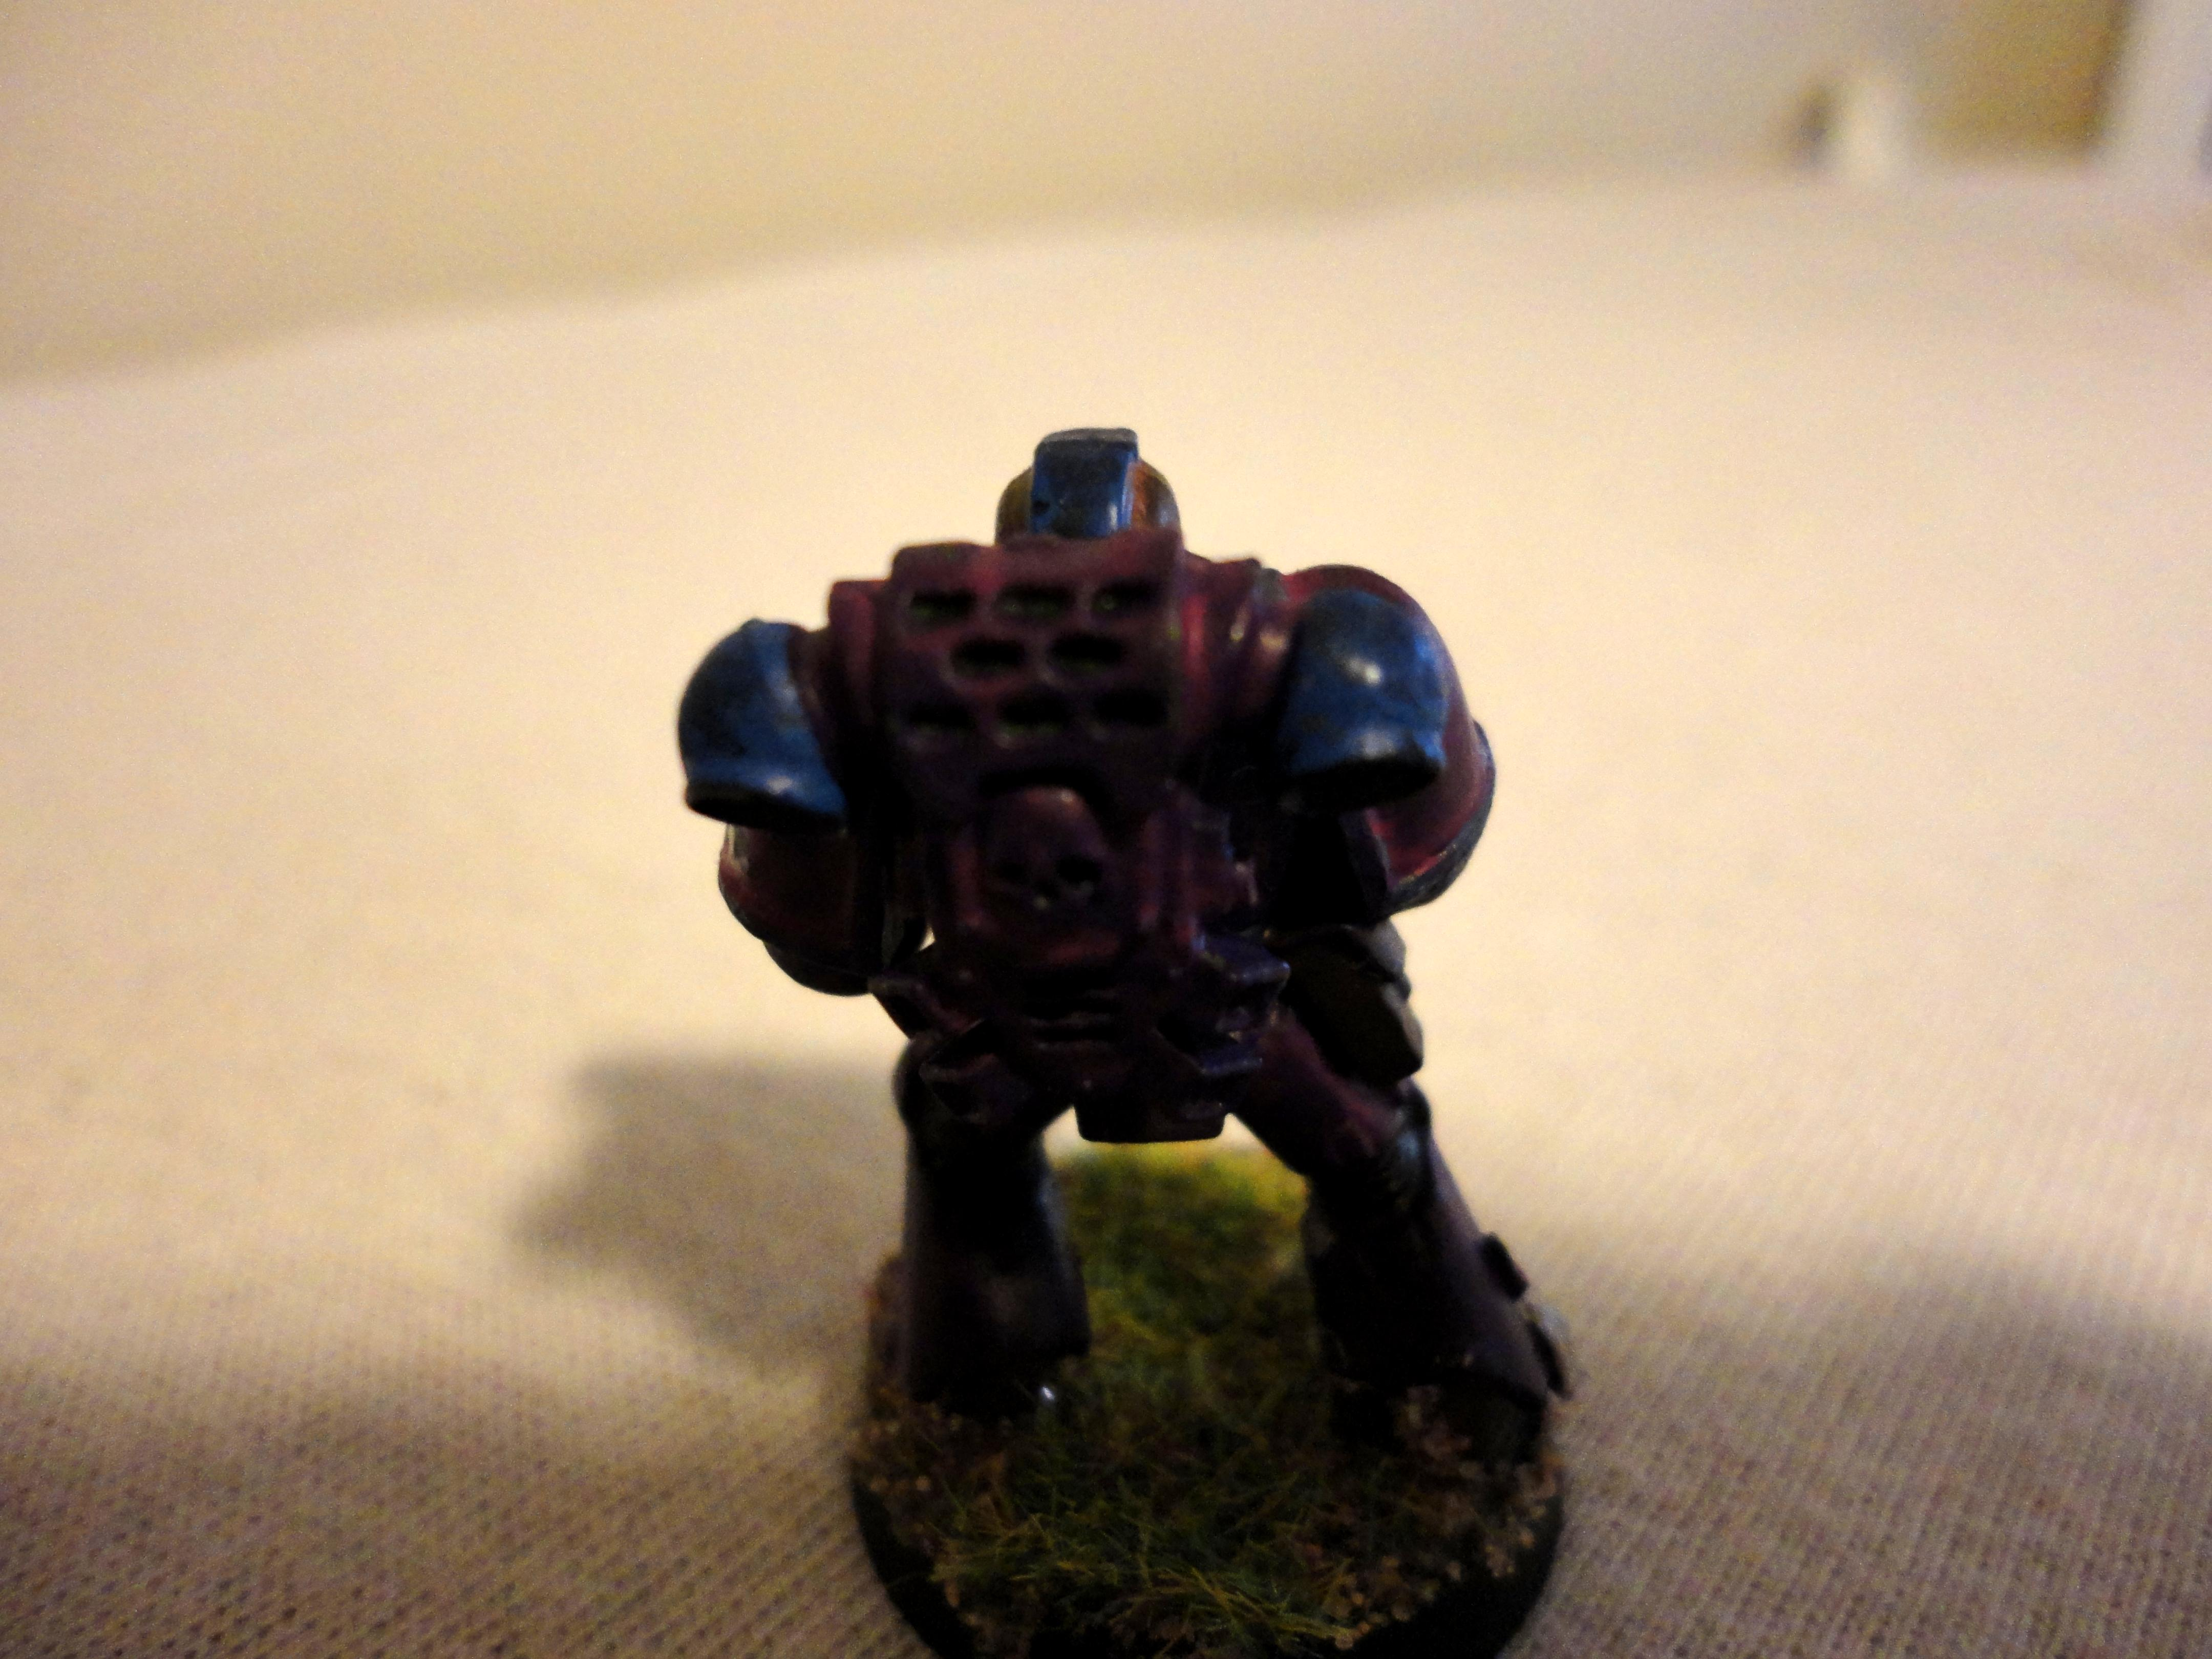 Tactical Marine back view